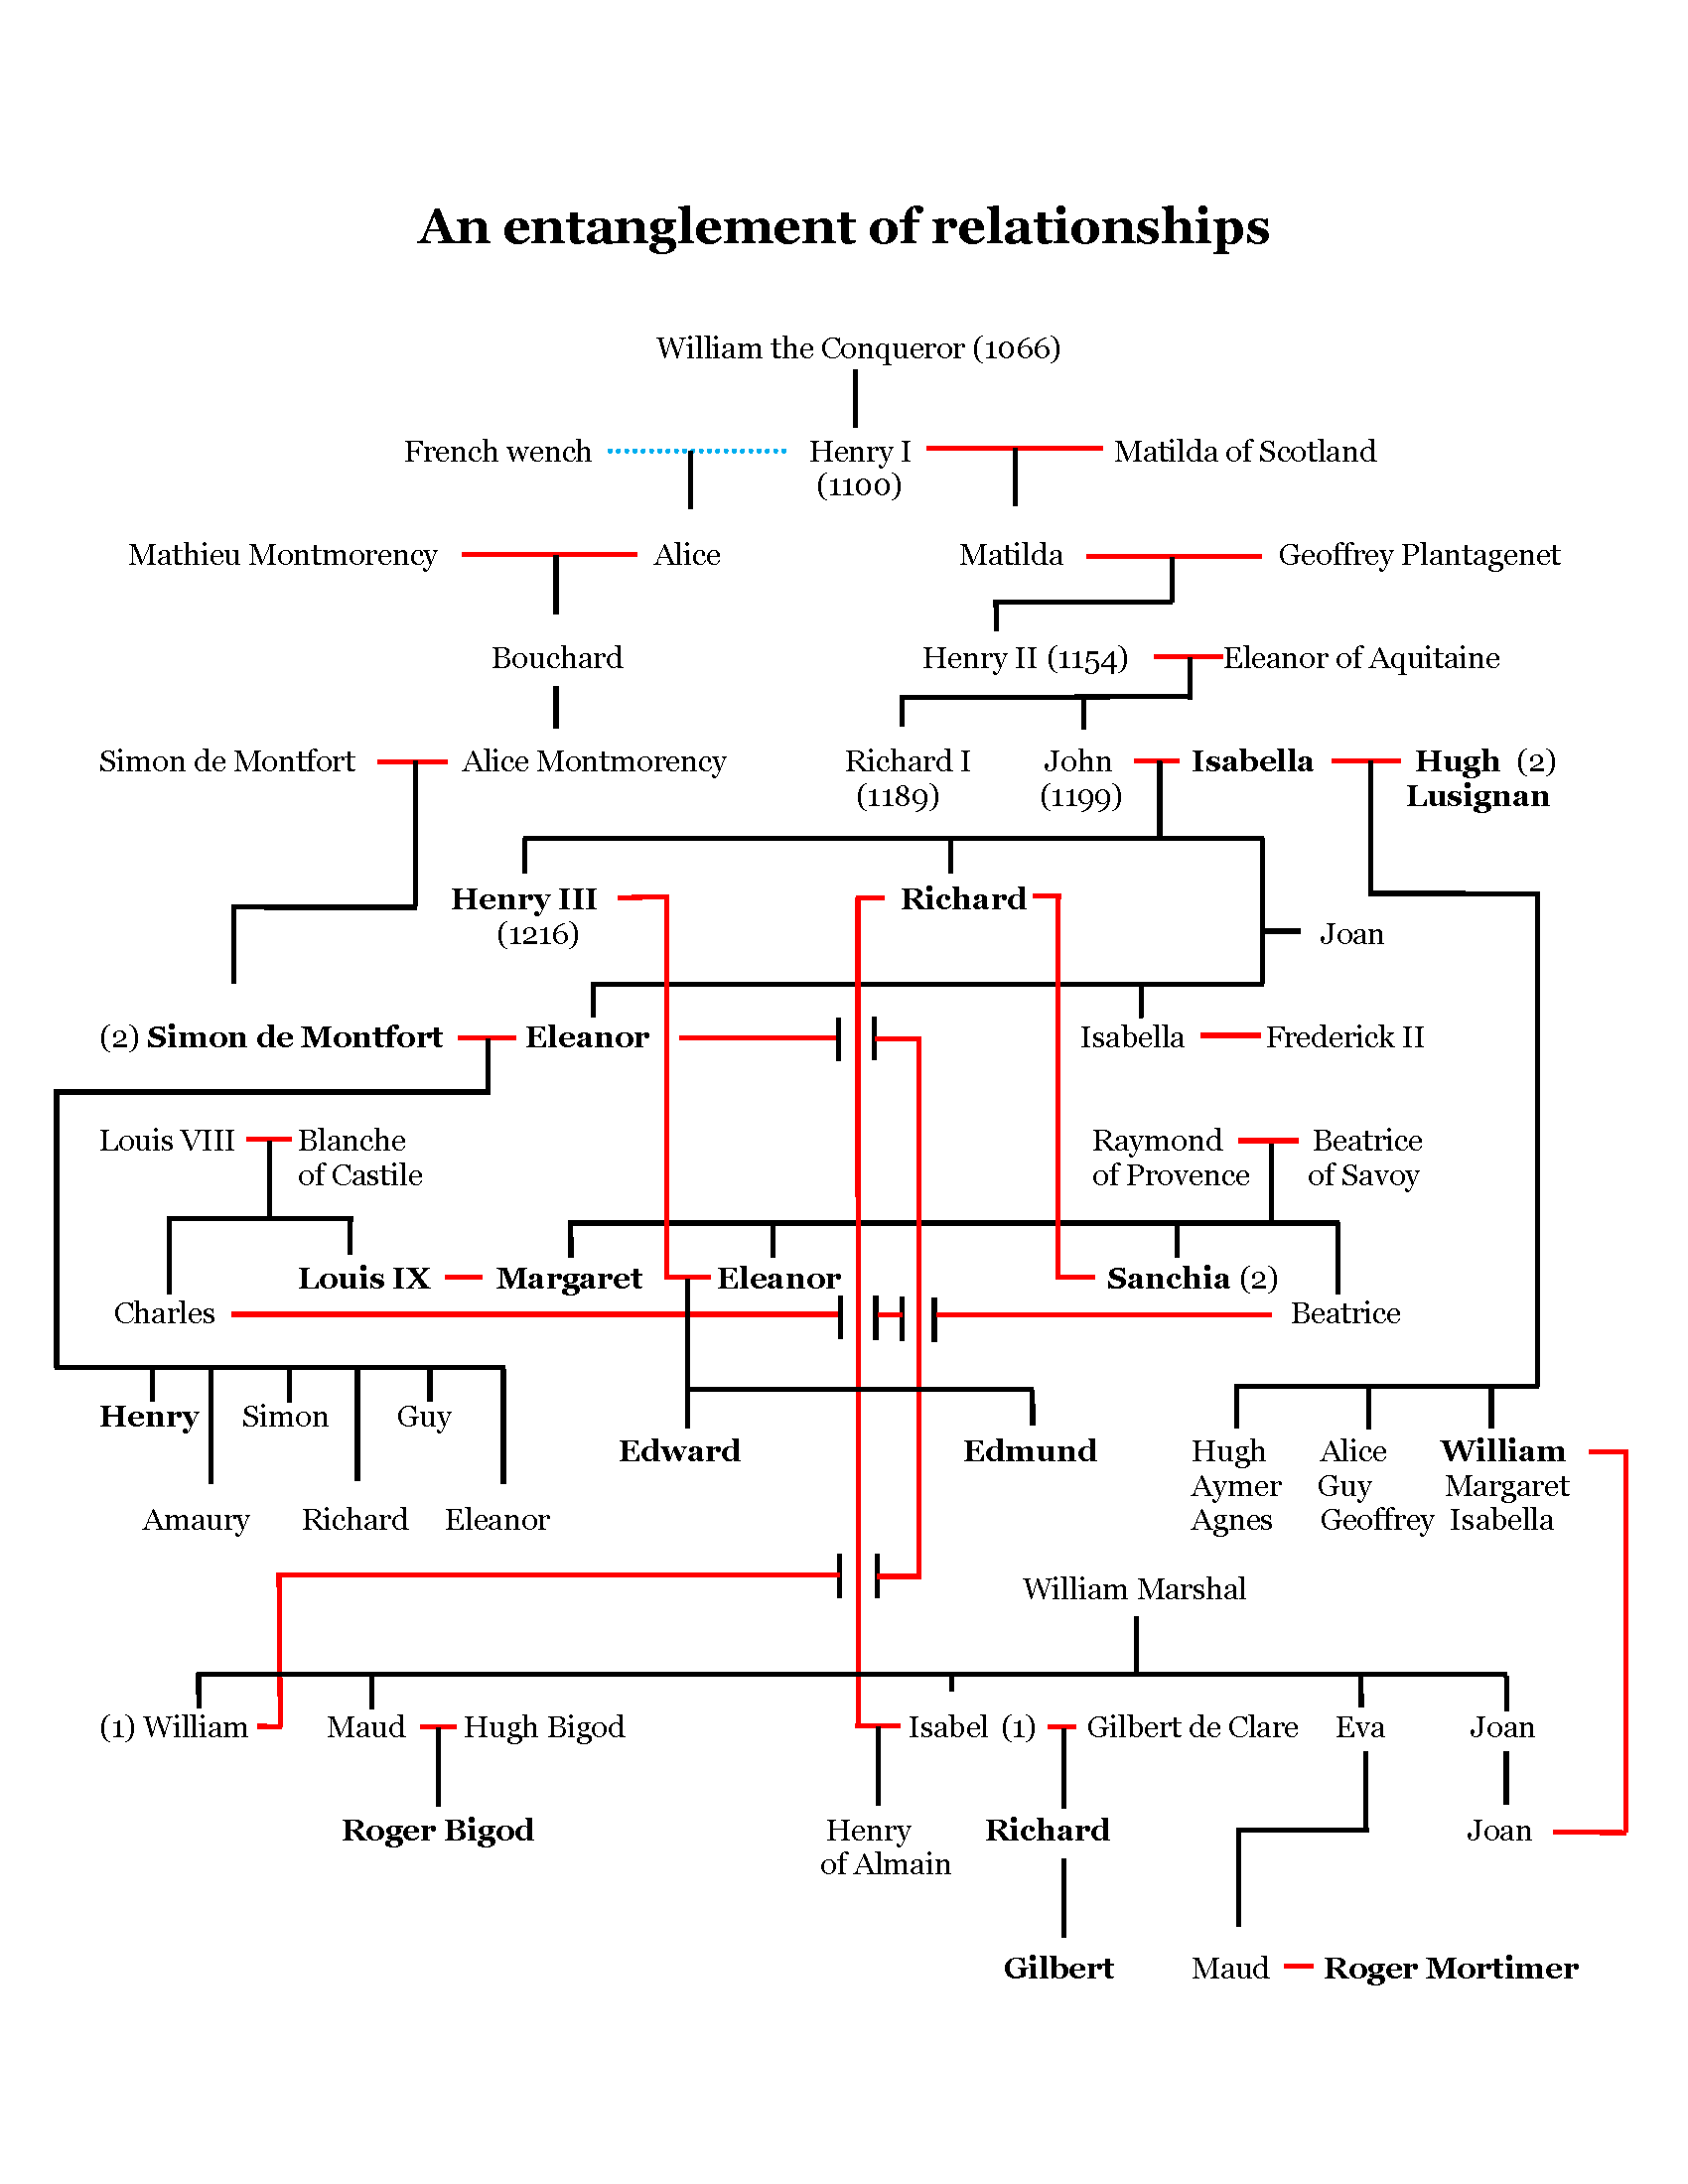 Henry-Simon family tree